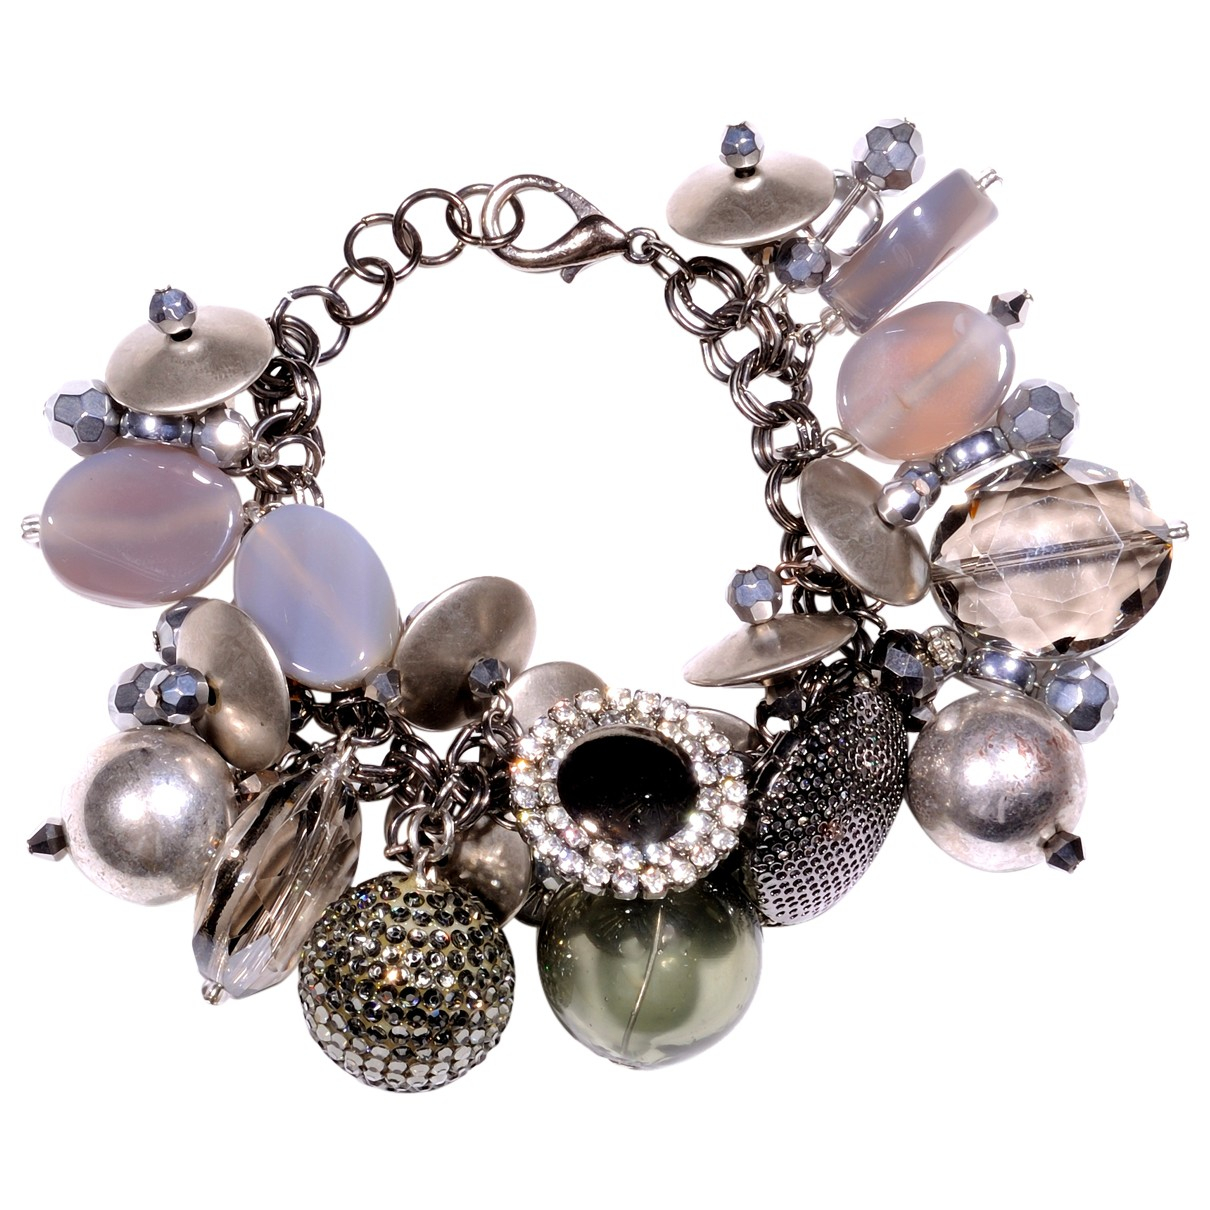 Non Signe / Unsigned Gourmette Armband in  Silber Metall